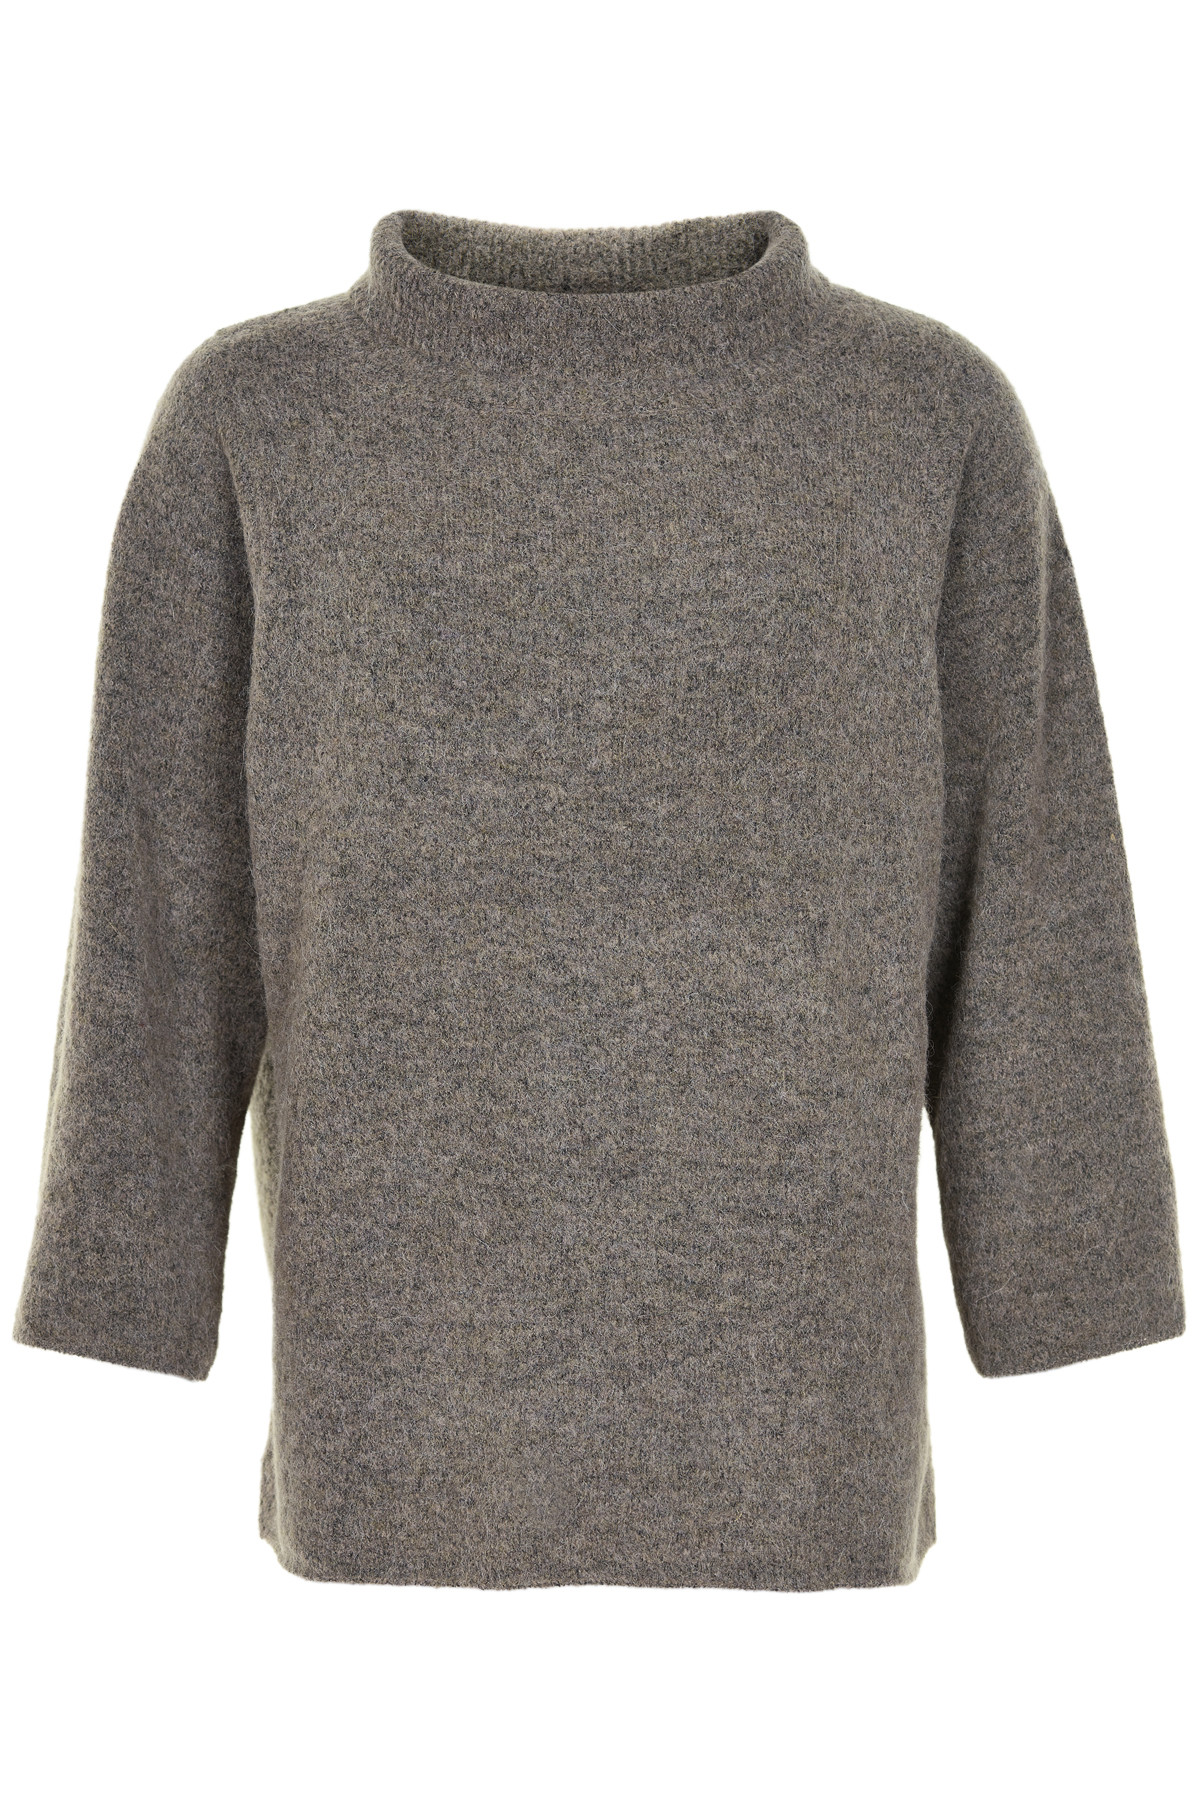 Image of   AND LESS ALELENORE PULLOVER 5519204 W (Walnut, S)